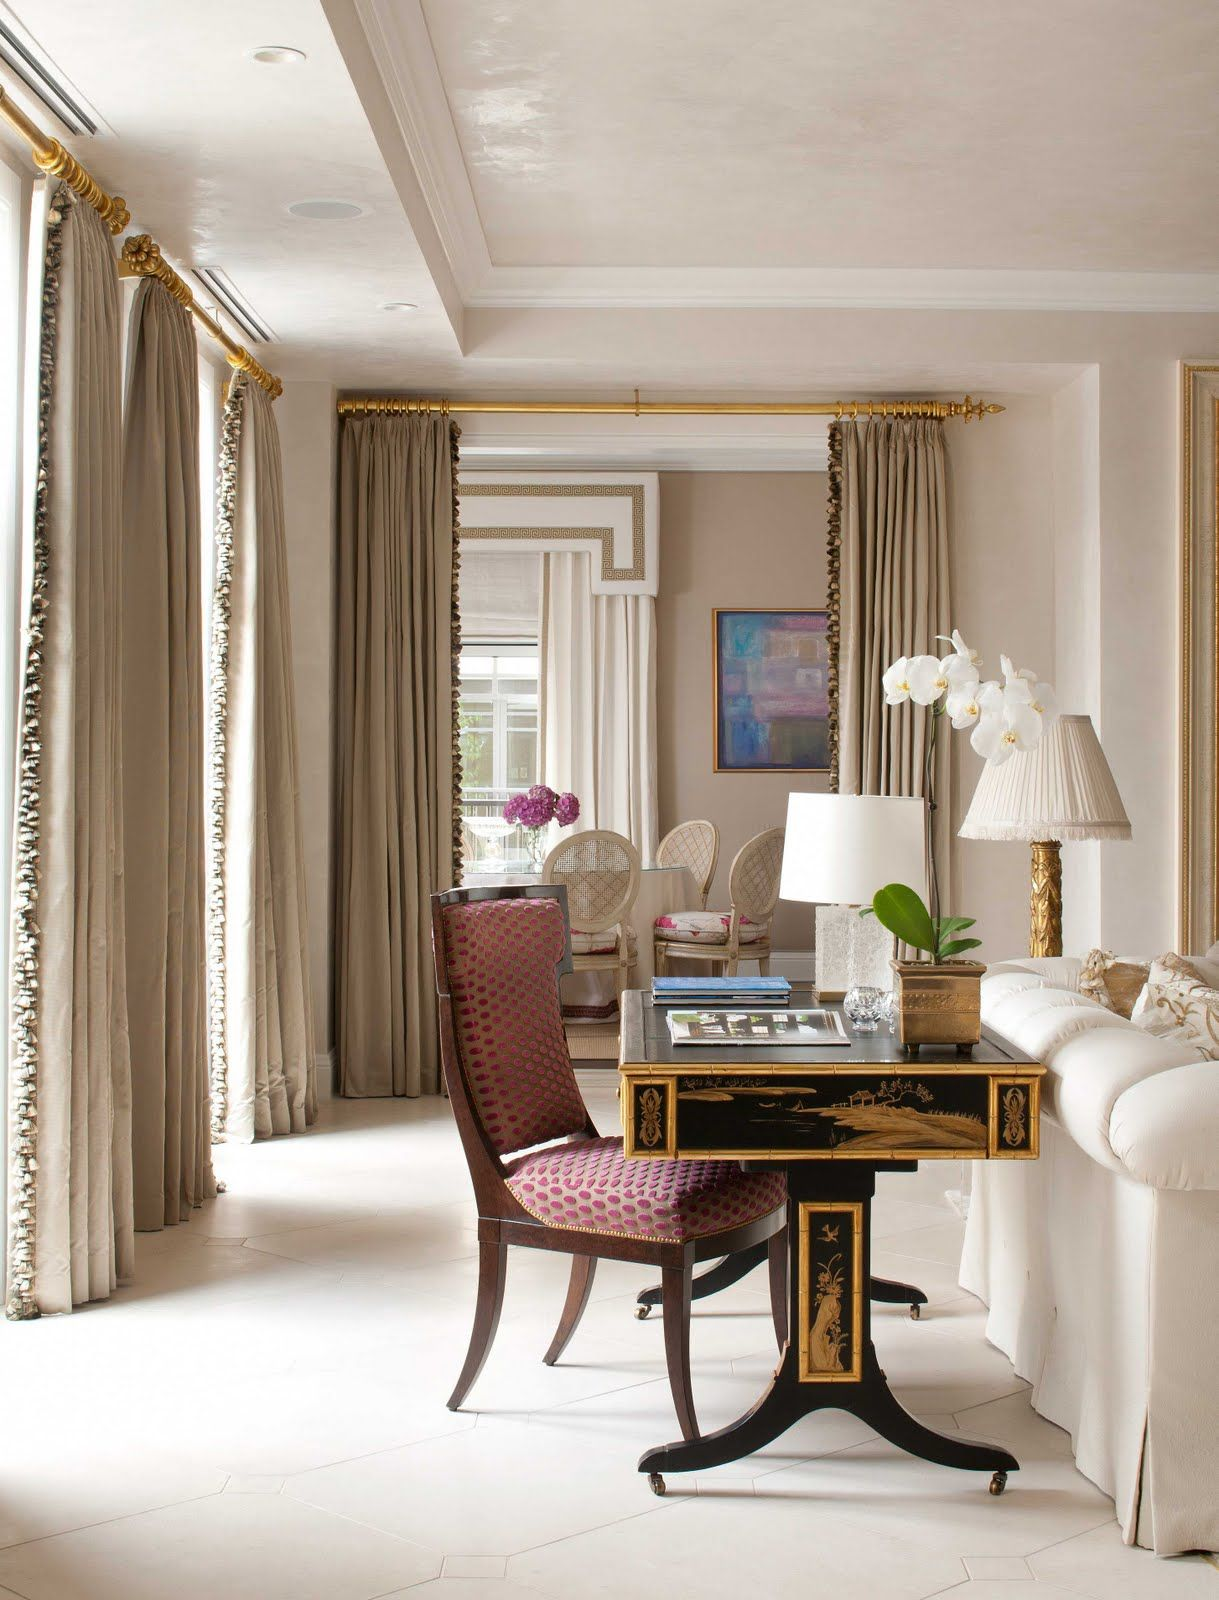 Dining room window coverings  trim on curtains  client inspiration  pinterest  cornice window